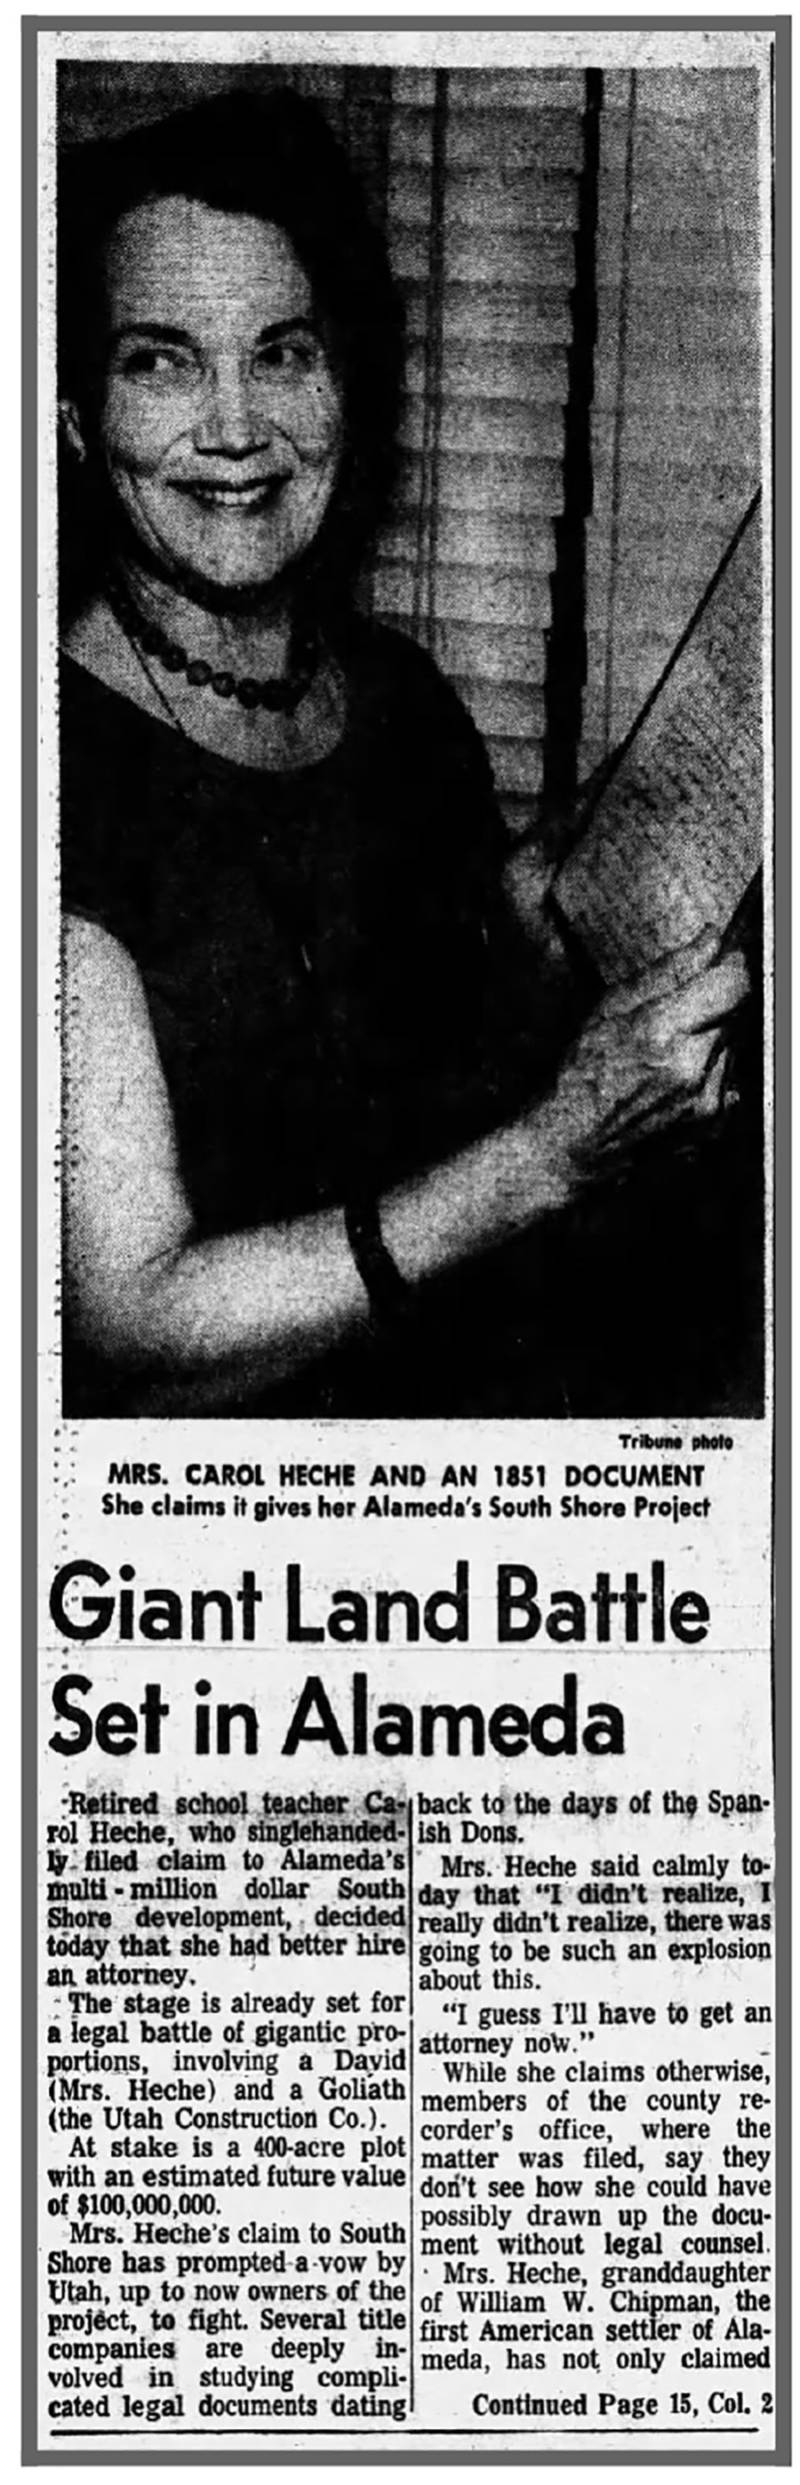 A newspaper clipping detailing one of Carol Heche's other legal battles borne out of her claim to submerged land off of Alameda Island.